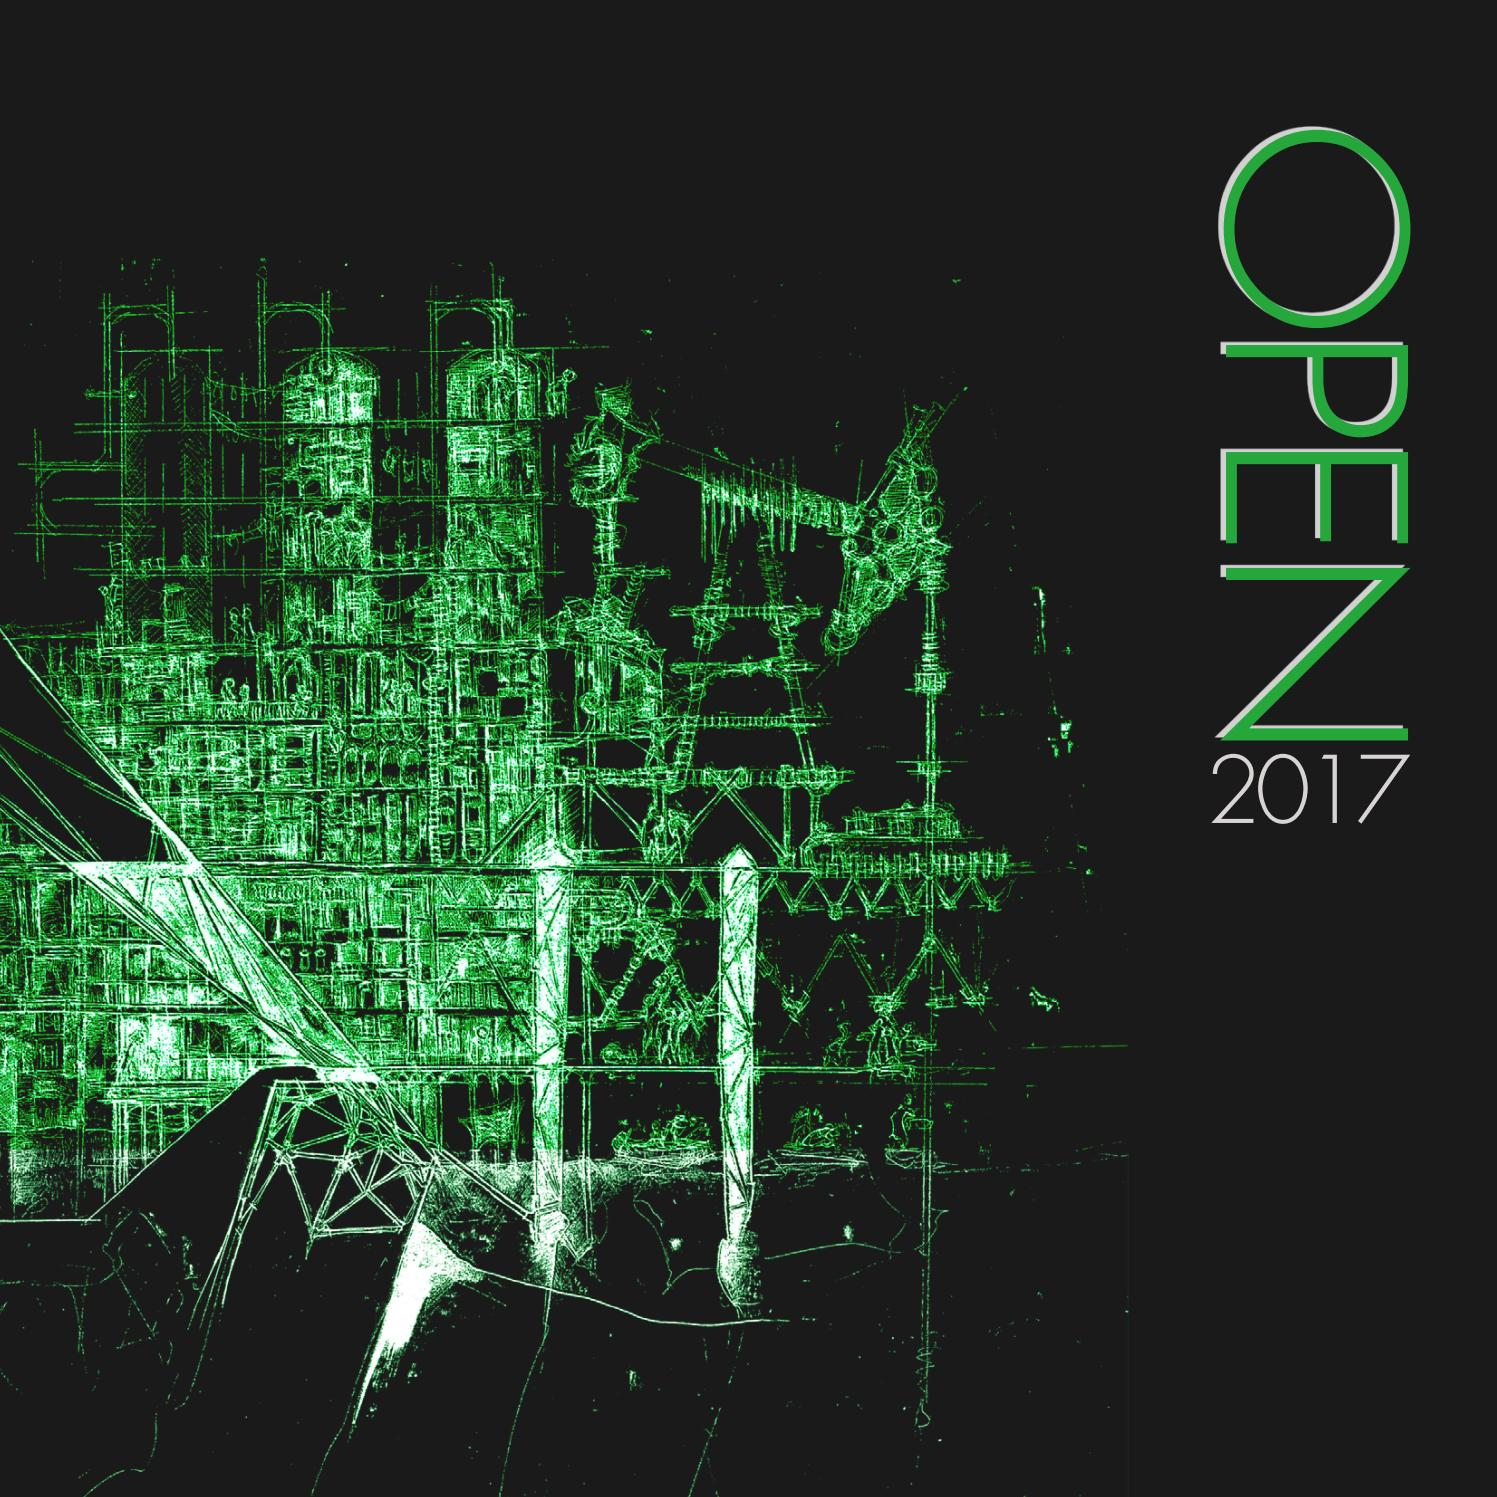 Open 2017 by Clare Hamman - issuu